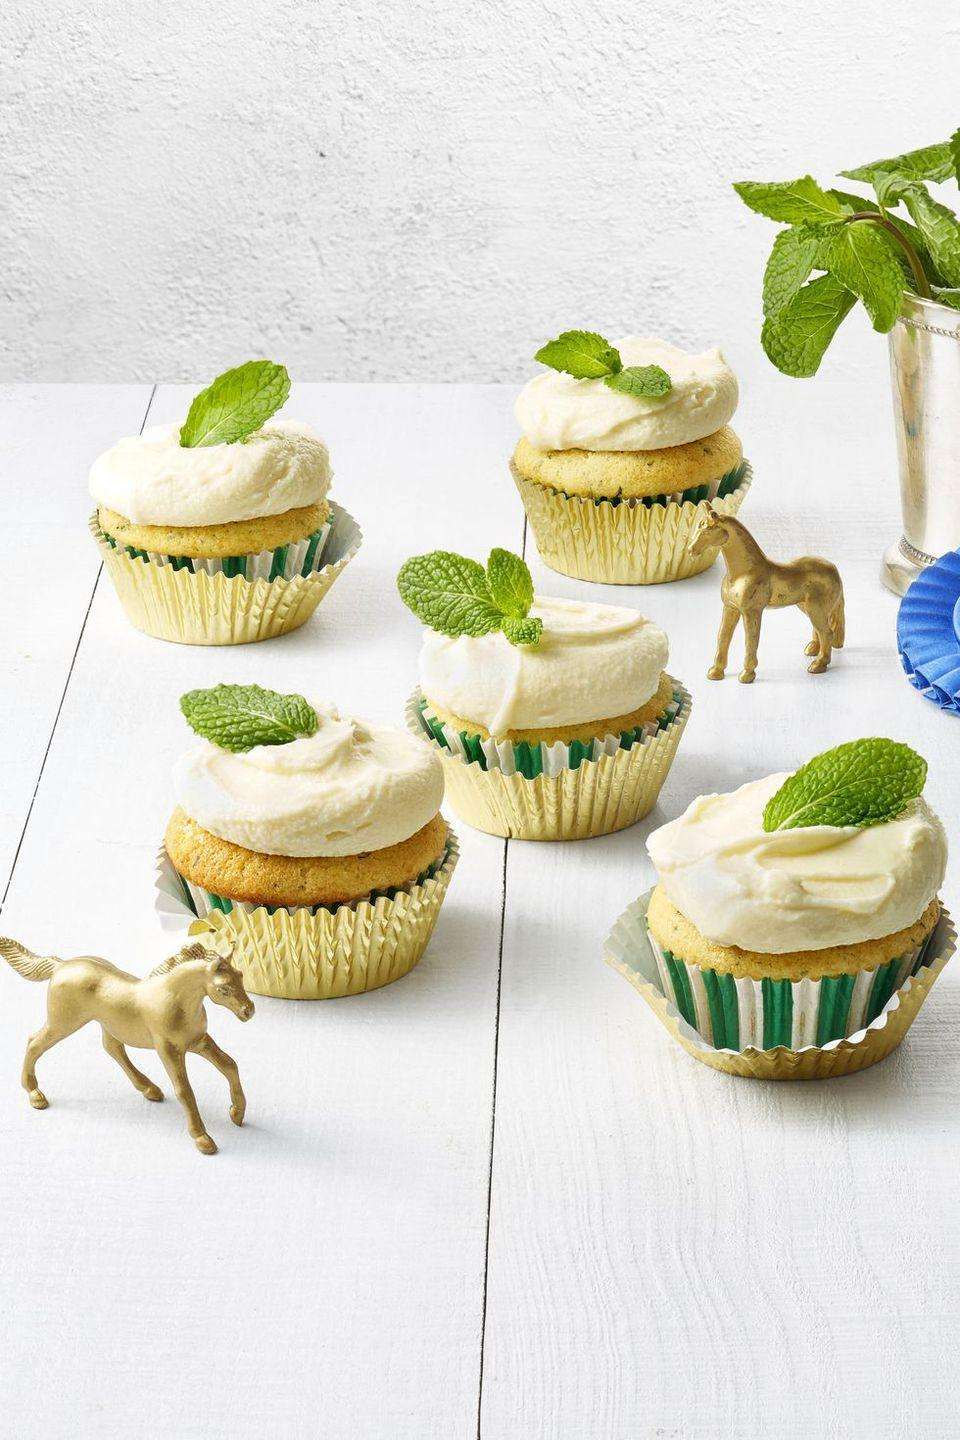 "<p>Raise a glass — ahem, cupcake — to Mom. She deserves it after all you put her through ...</p><p><em><a href=""https://www.goodhousekeeping.com/food-recipes/dessert/a19866233/mint-julep-cupcakes-recipe/"" rel=""nofollow noopener"" target=""_blank"" data-ylk=""slk:Get the recipe for Mint Julep Cupcakes »"" class=""link rapid-noclick-resp"">Get the recipe for Mint Julep Cupcakes »</a></em><br></p>"